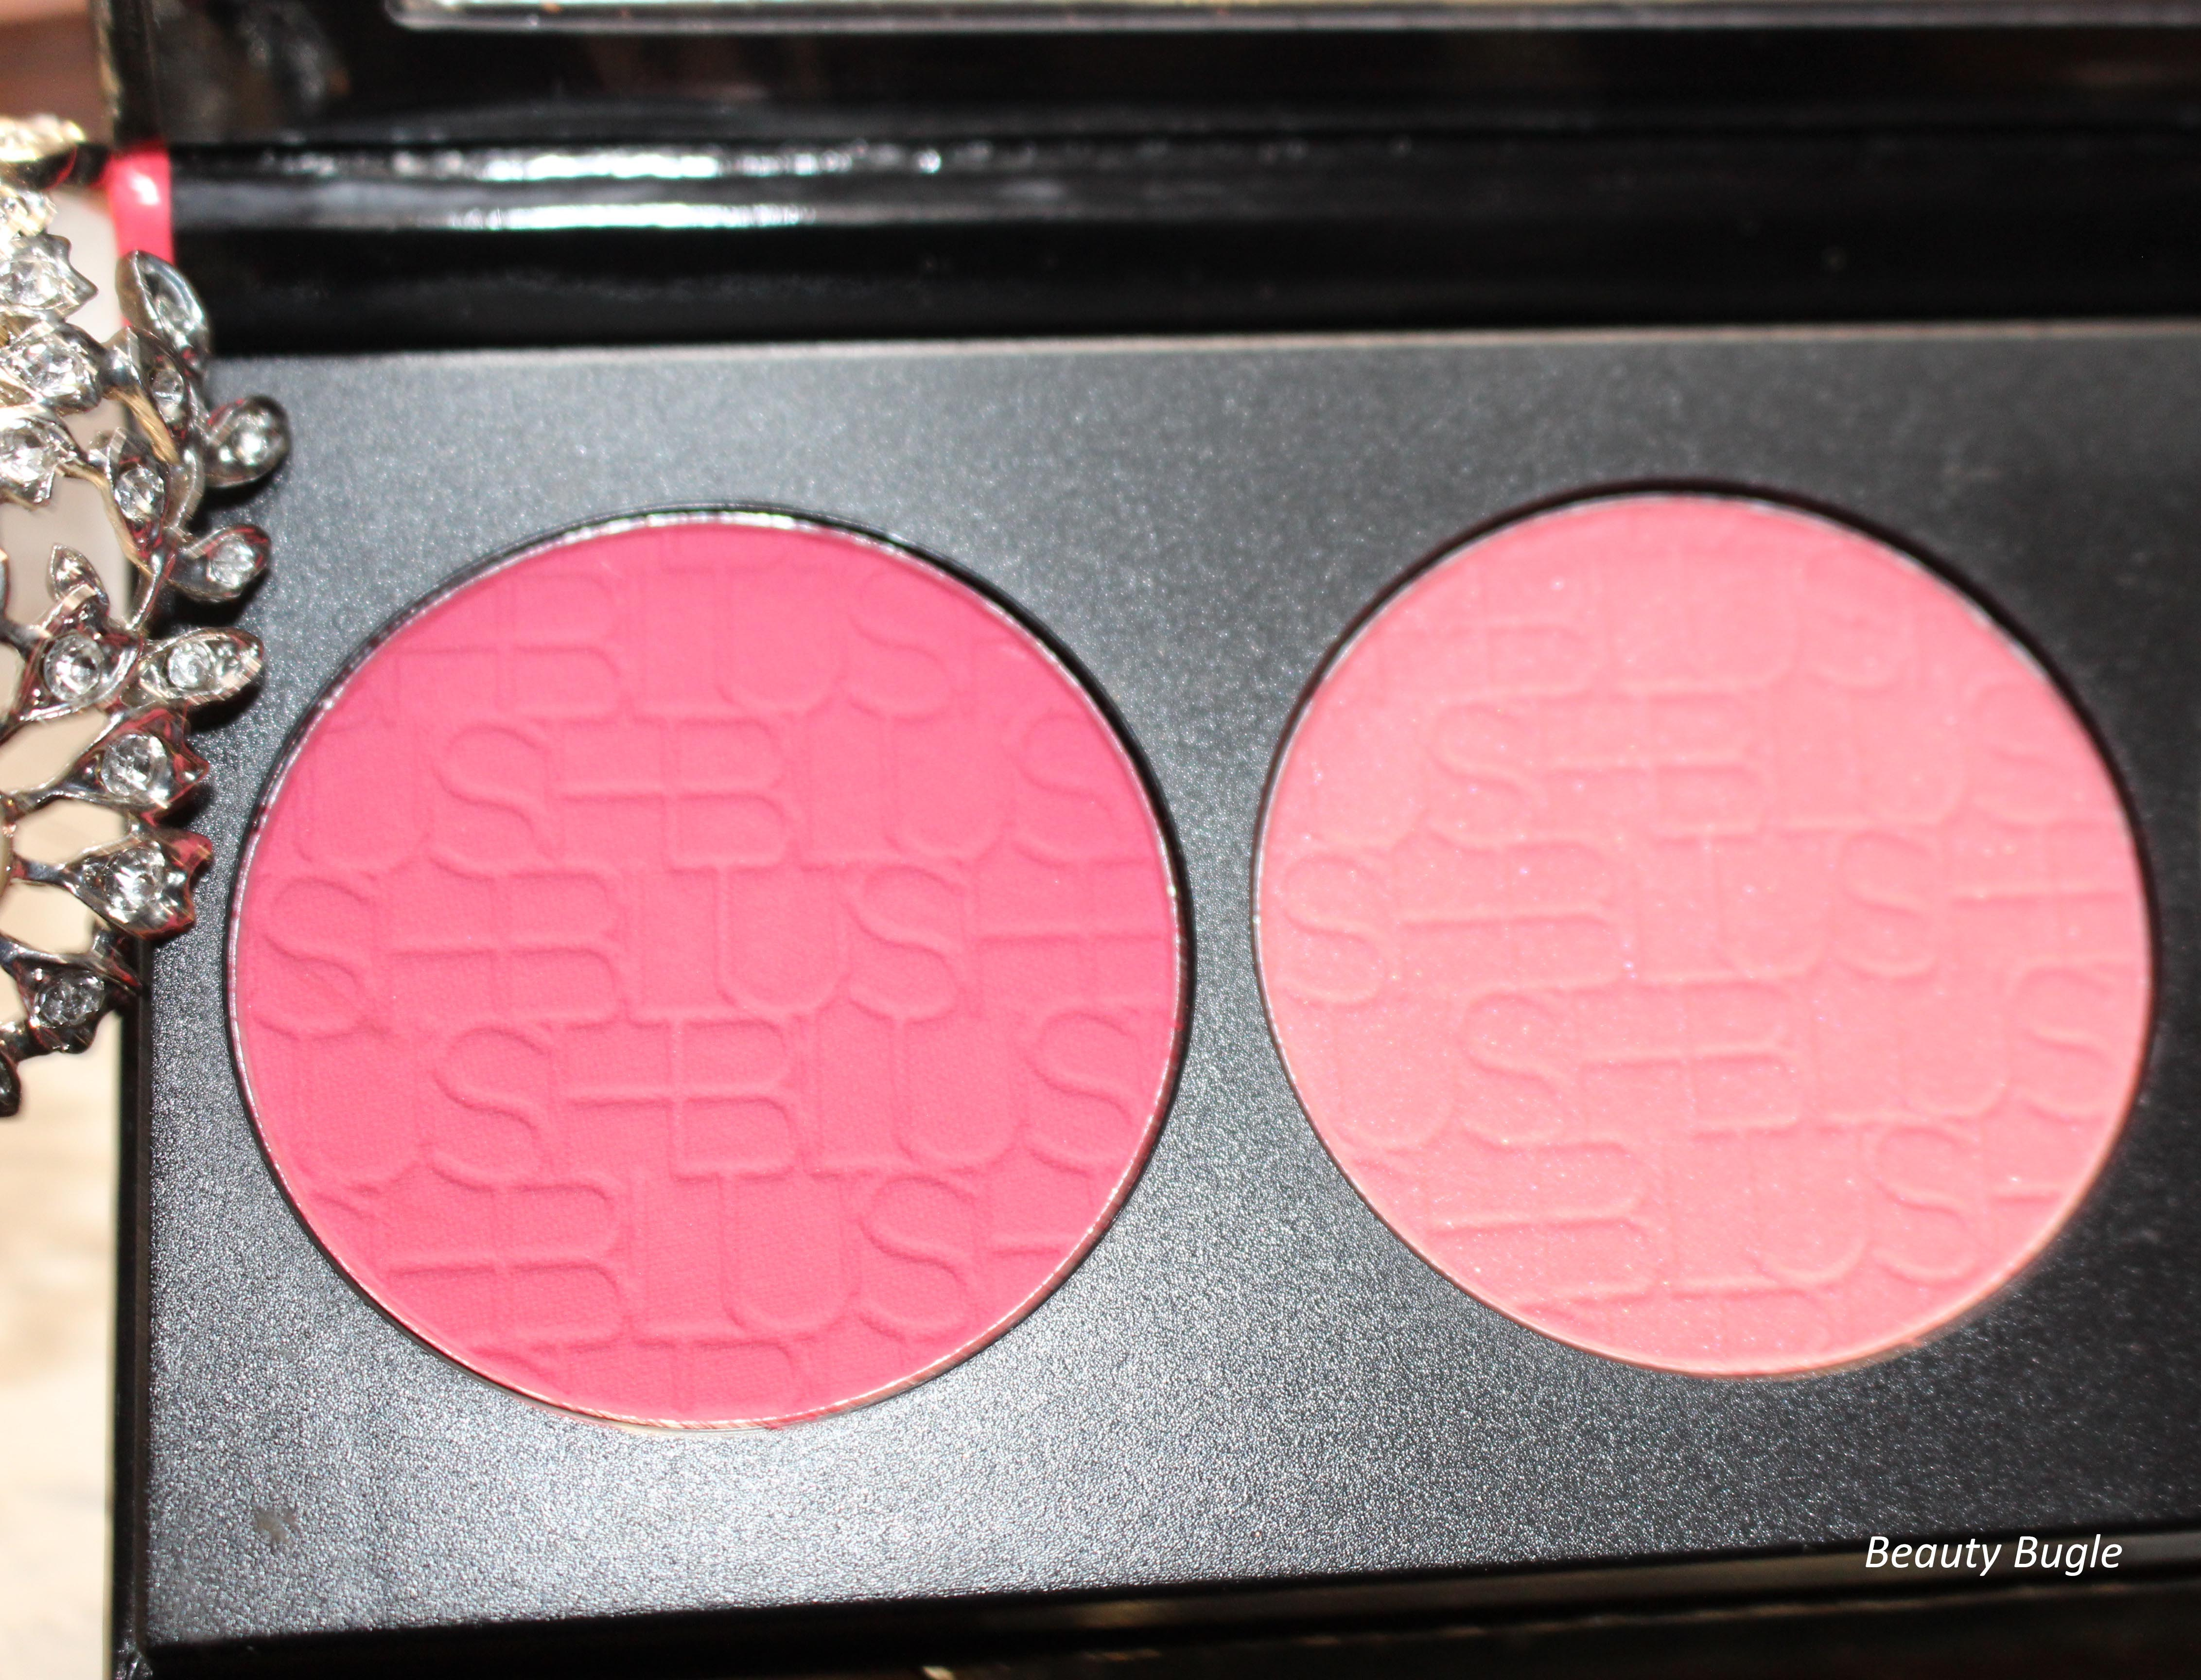 Review La Girl Blush Brick Glam Beauty Bugle Eye Shadow The Hot Pink And Pale Topper